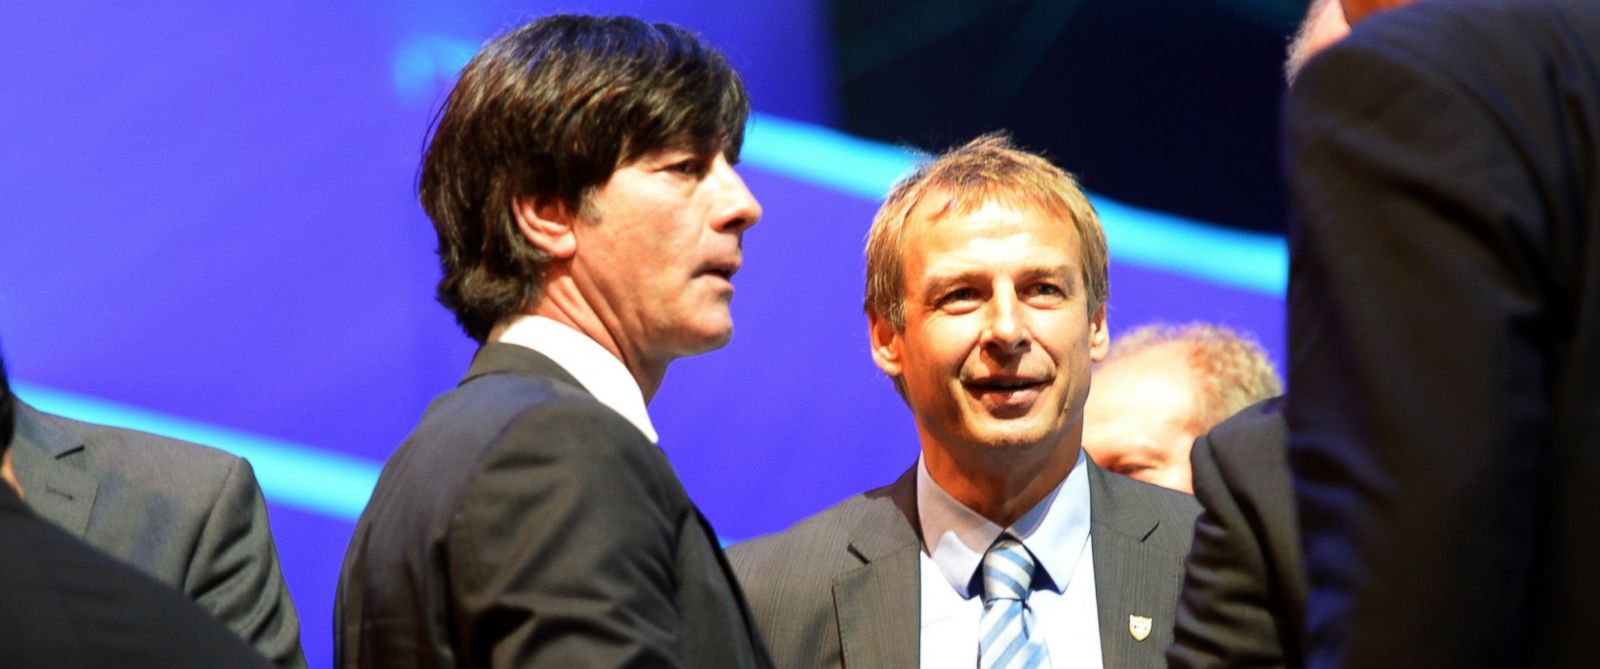 PHOTO: Head coach of Germany, Joachim Loew stands next to head coach of USA, German Jurgen Klinsmann, during the final draw of the preliminary round groups of the 2014 FIFA World Cup Brazil in Costa do Sauipe, Brazil, 06 December 2013.